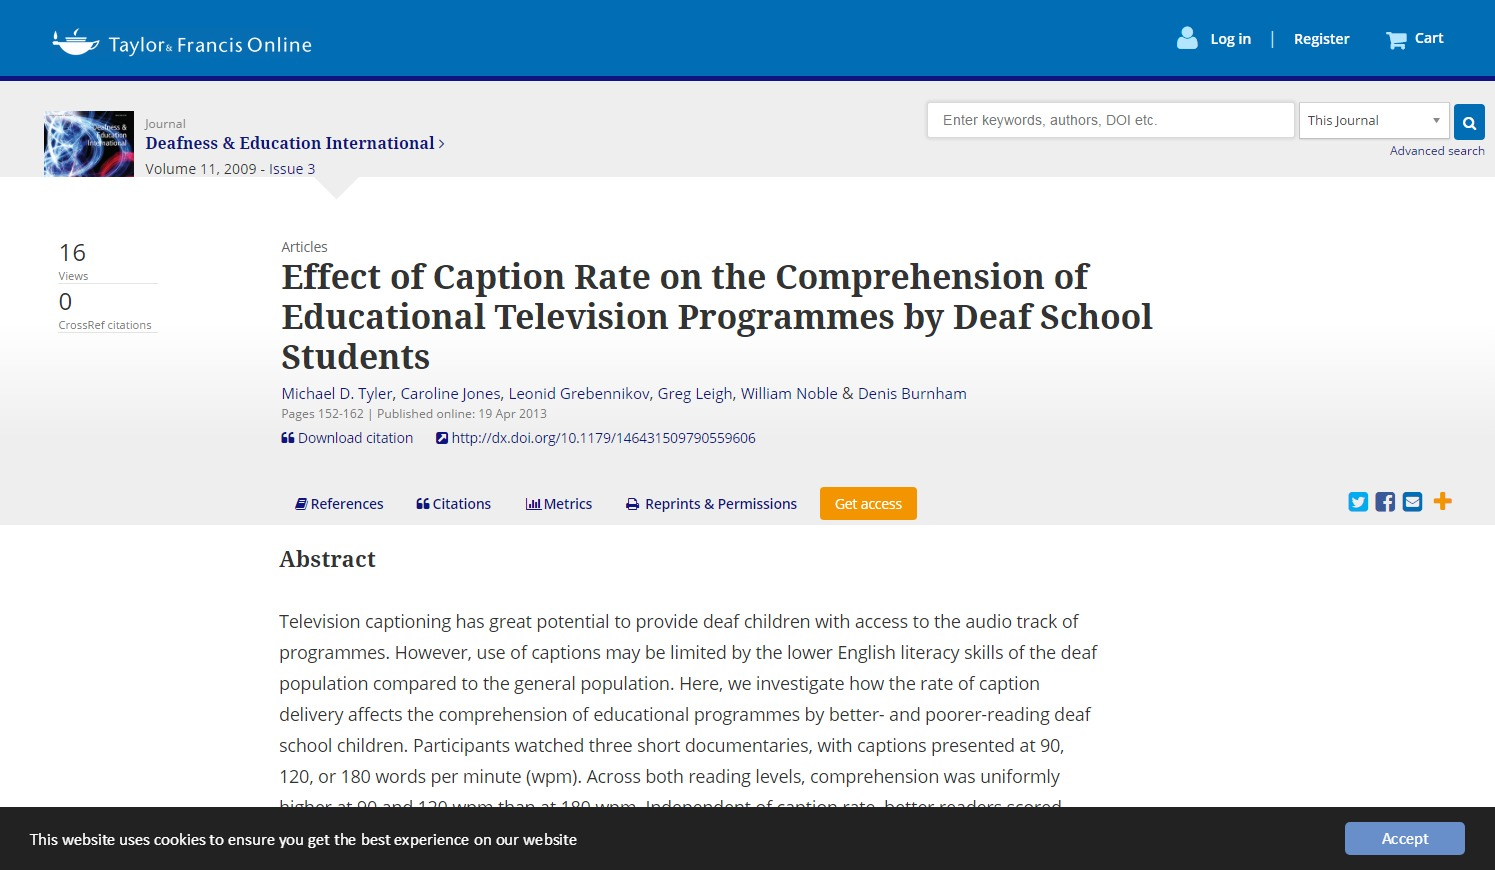 Effect of Caption Rate on the Comprehension of Educational Television Programmes by Deaf School Students